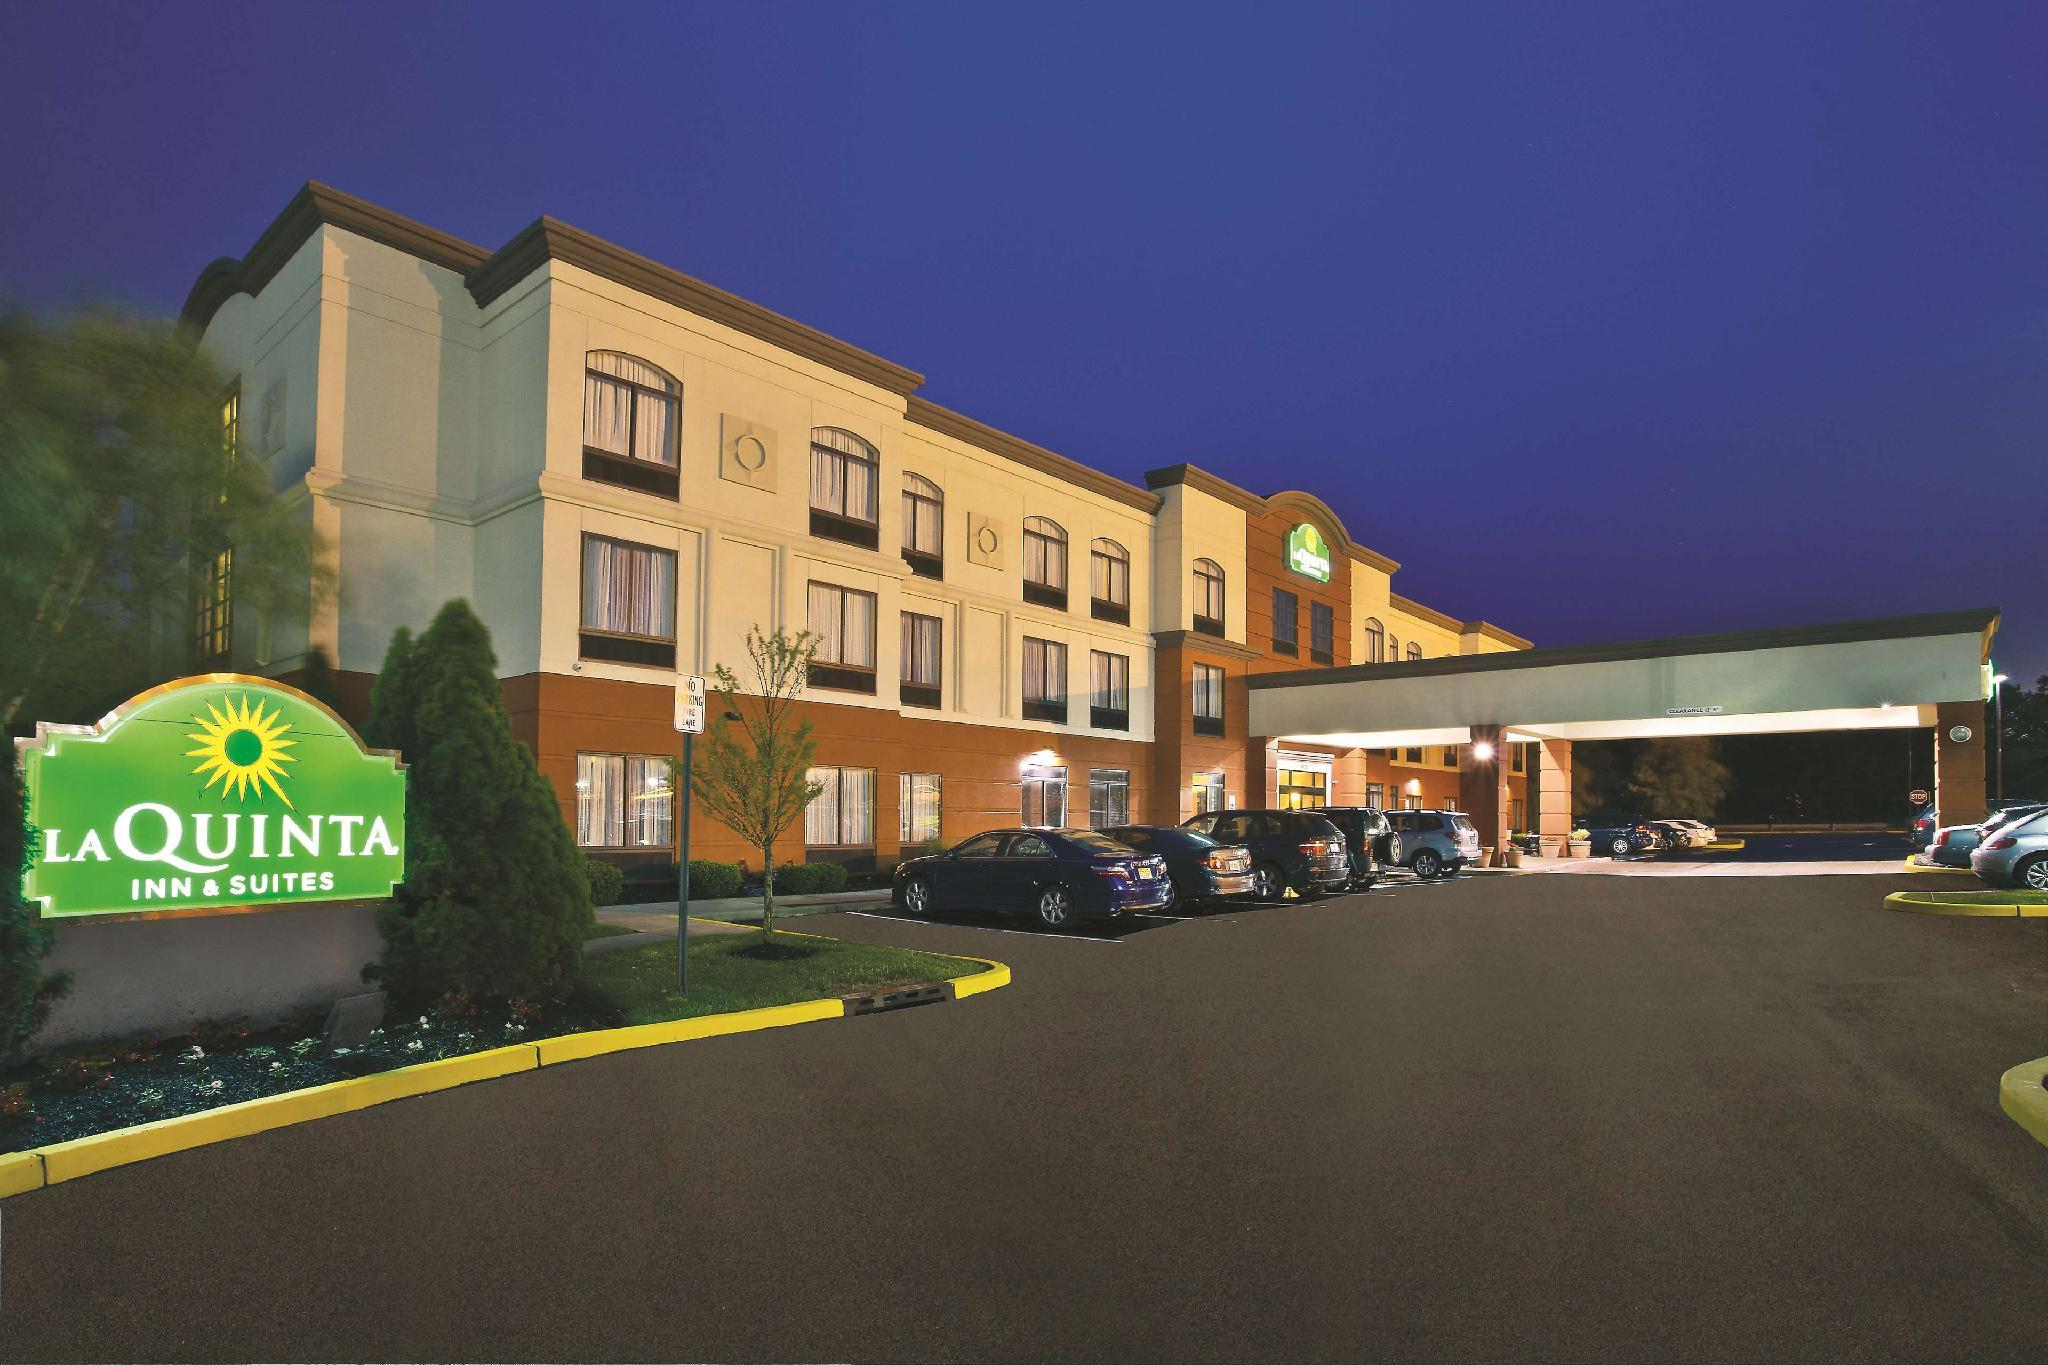 la quinta inn & suites mt. laurel - philadelphia in mount laurel (nj